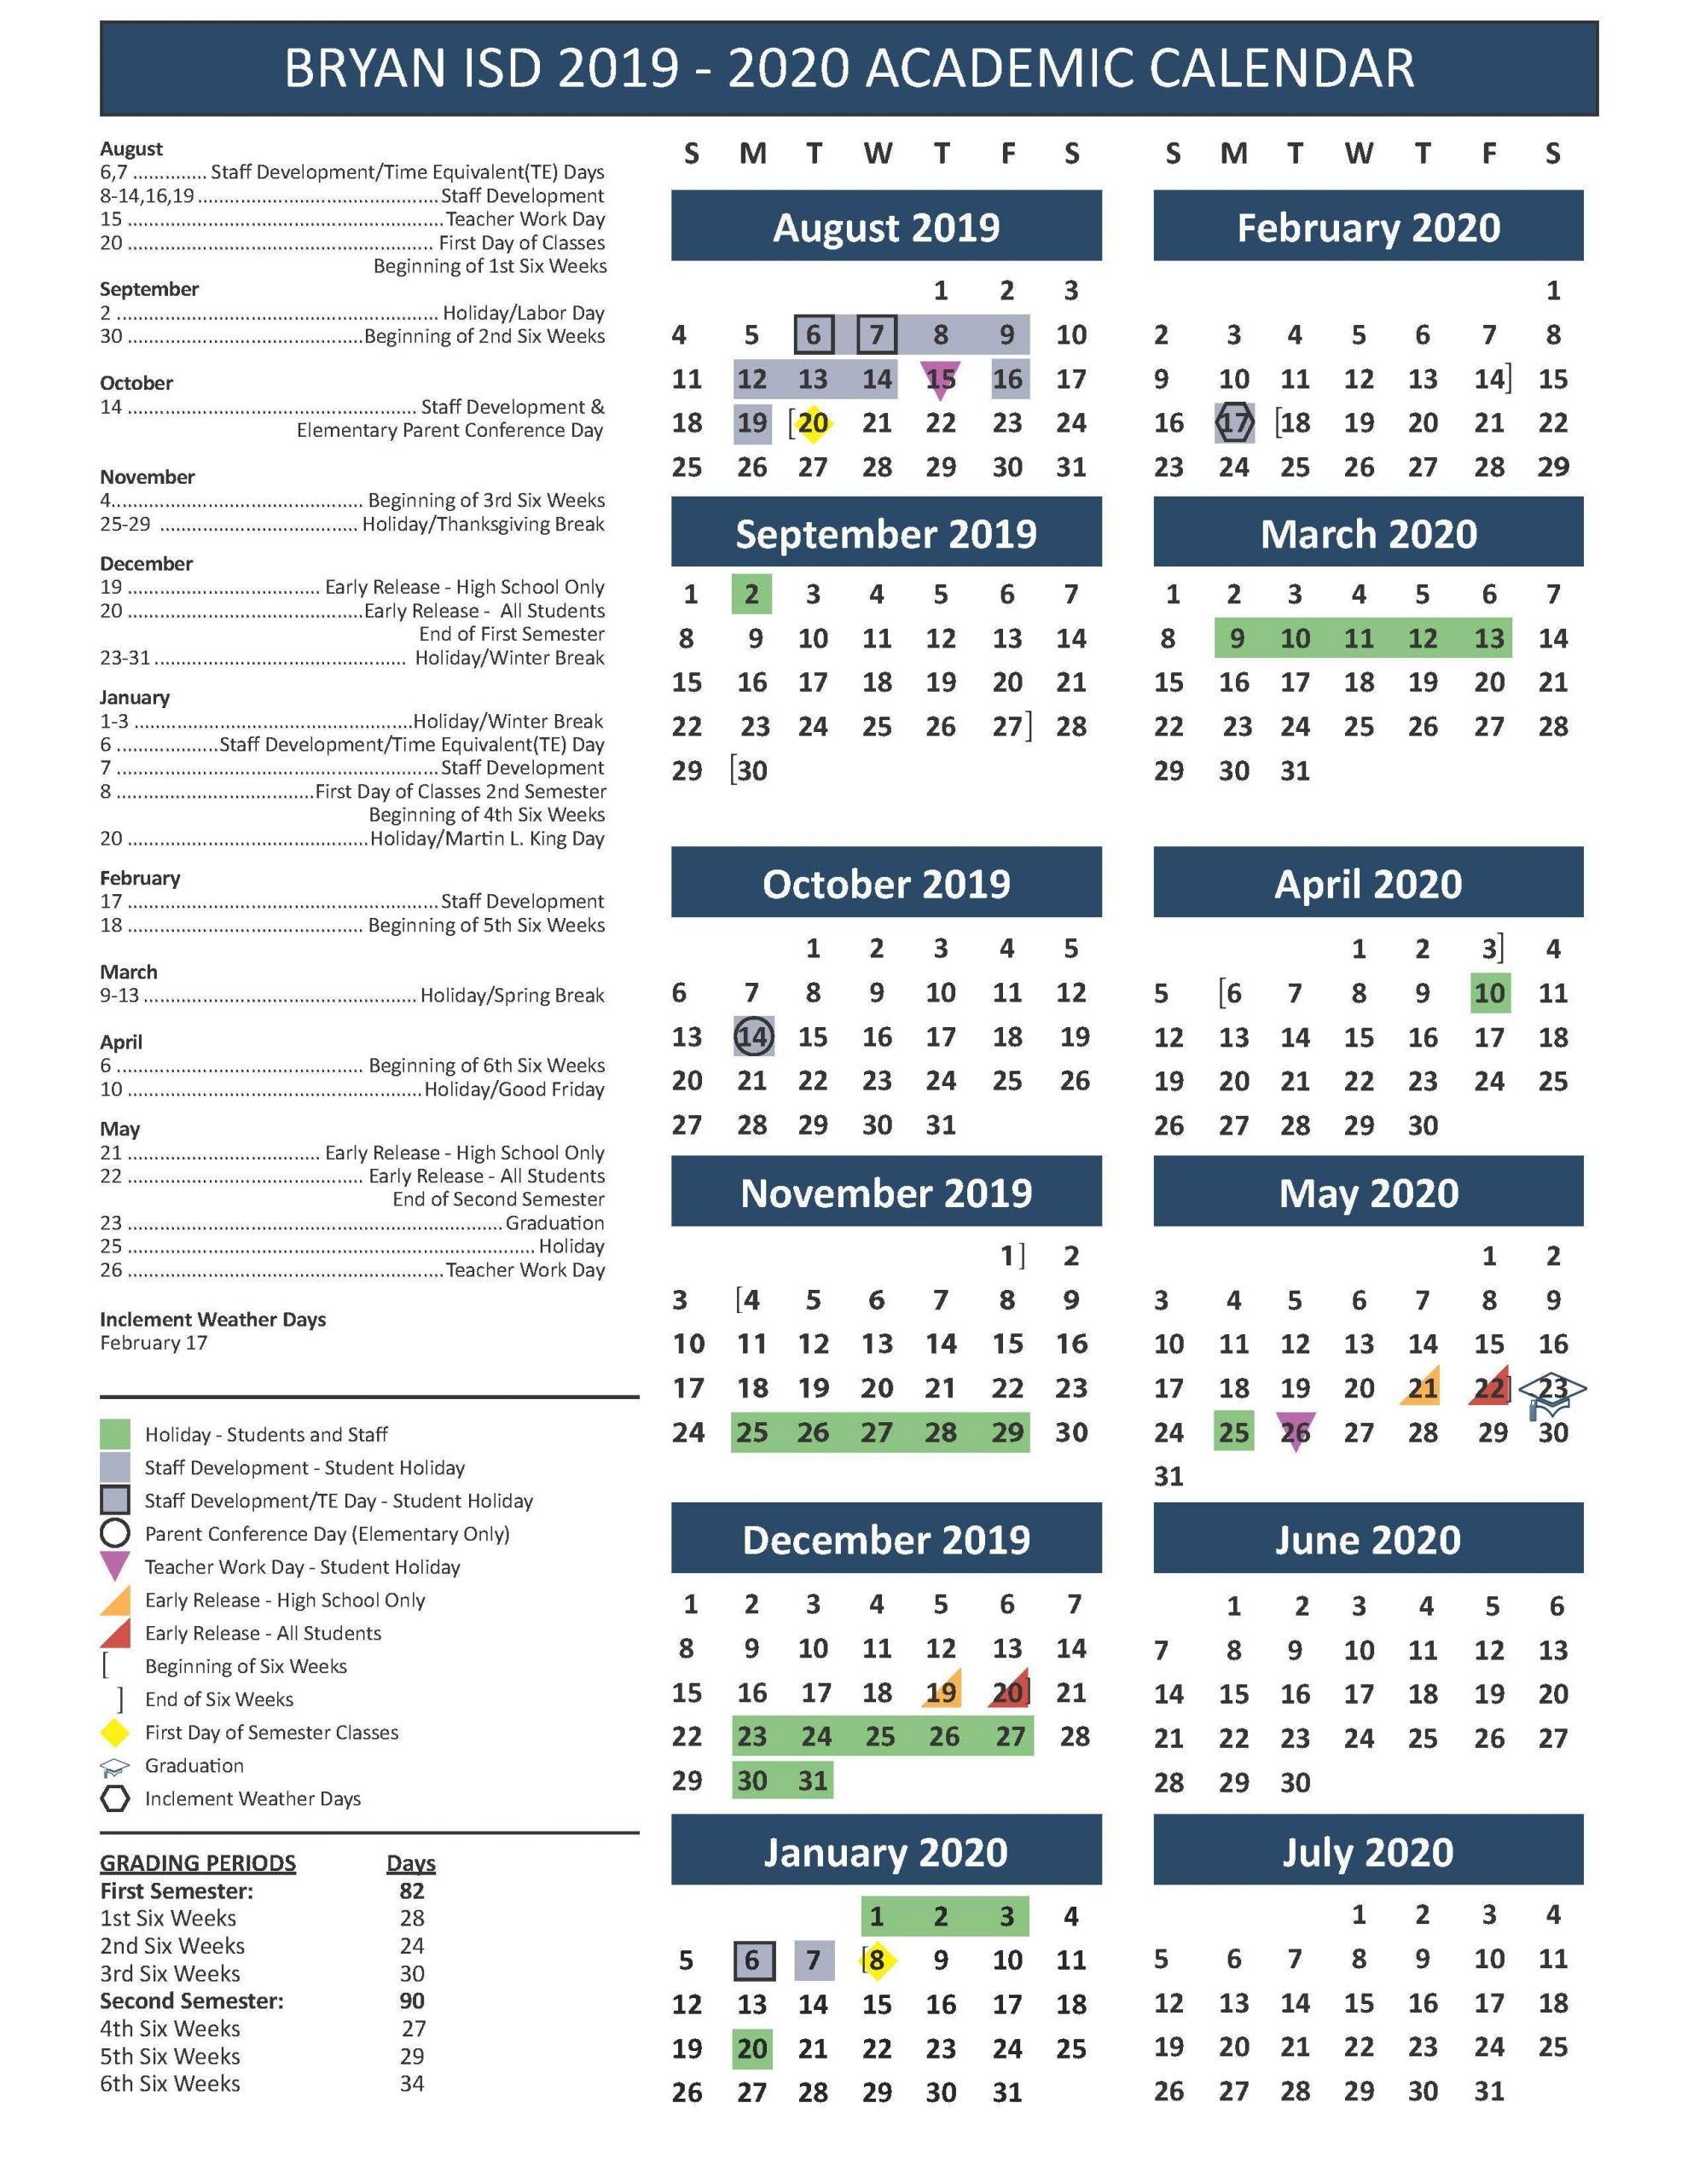 School Calendar, Testing & Fine Arts/athletics Events